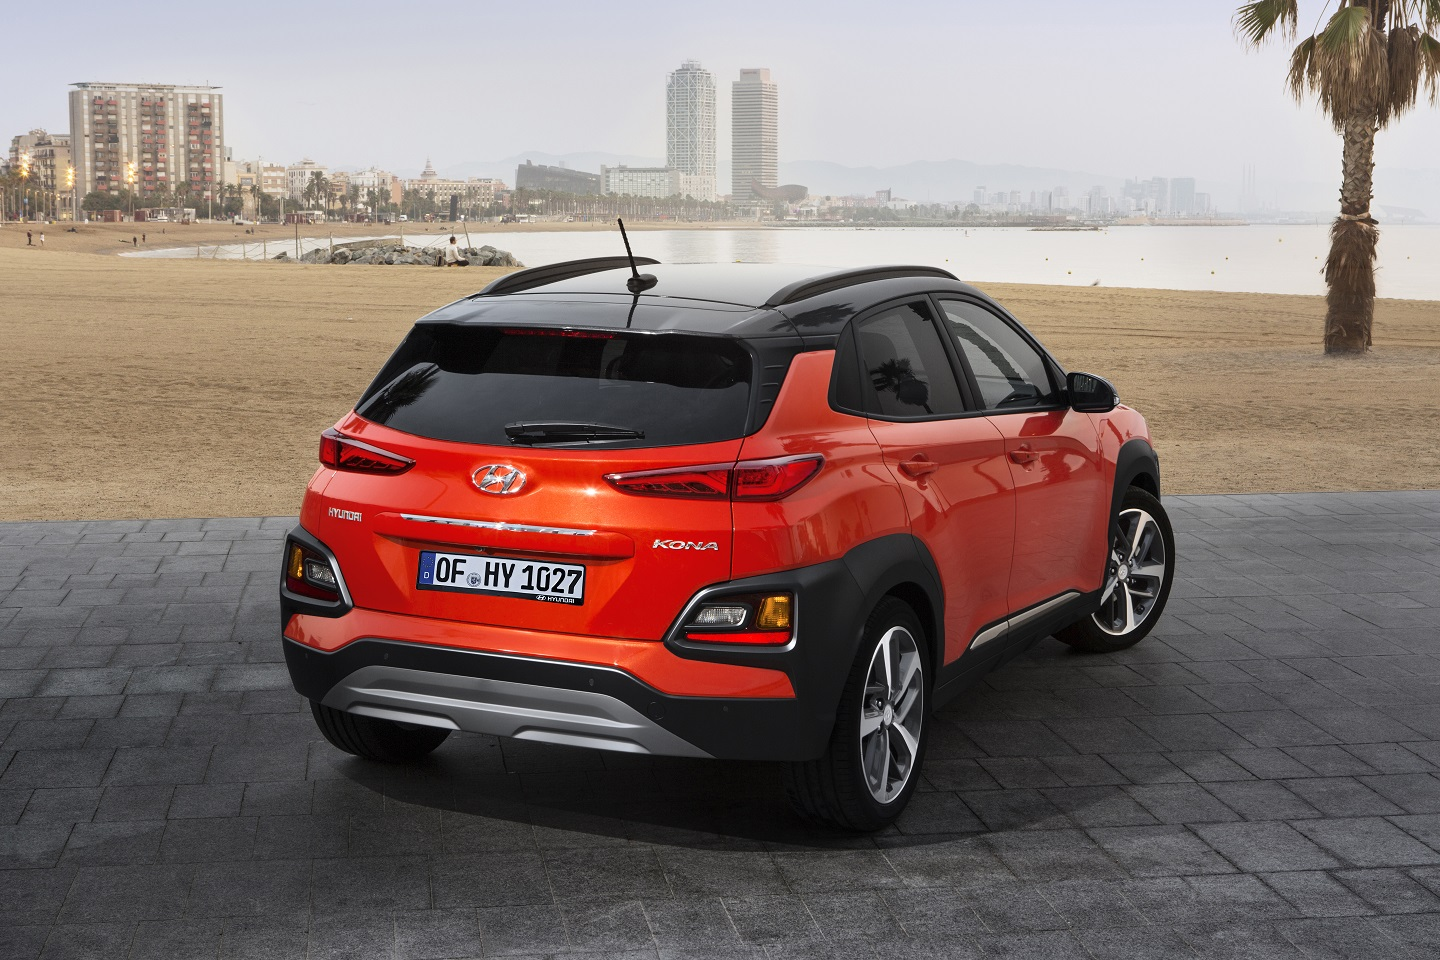 Hyundai Kona Pulse Red two-tone